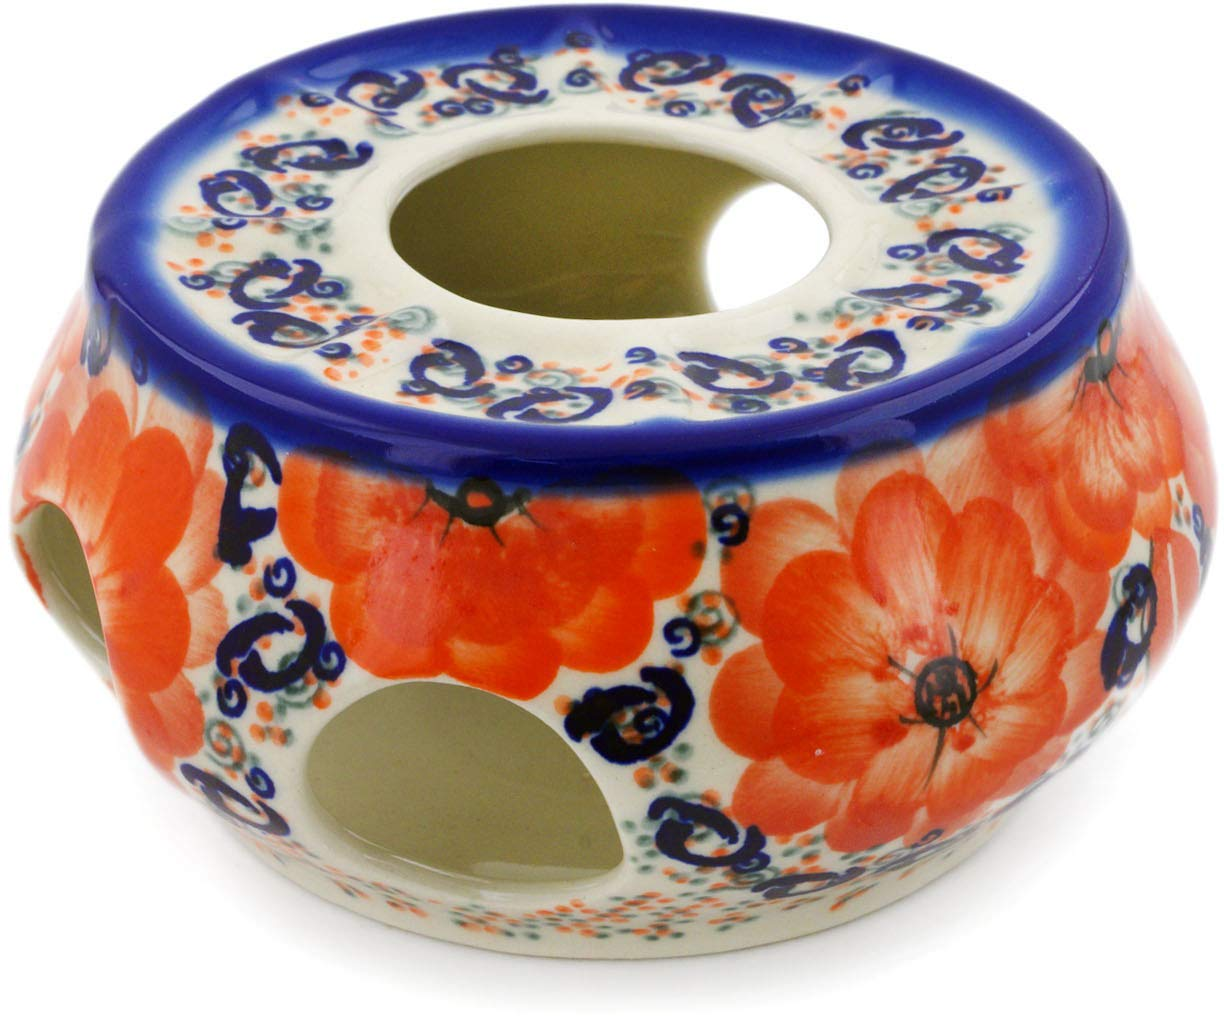 Polish Pottery 6-inch Heater (Poppy Passion Theme) Signature UNIKAT + Certificate of Authenticity